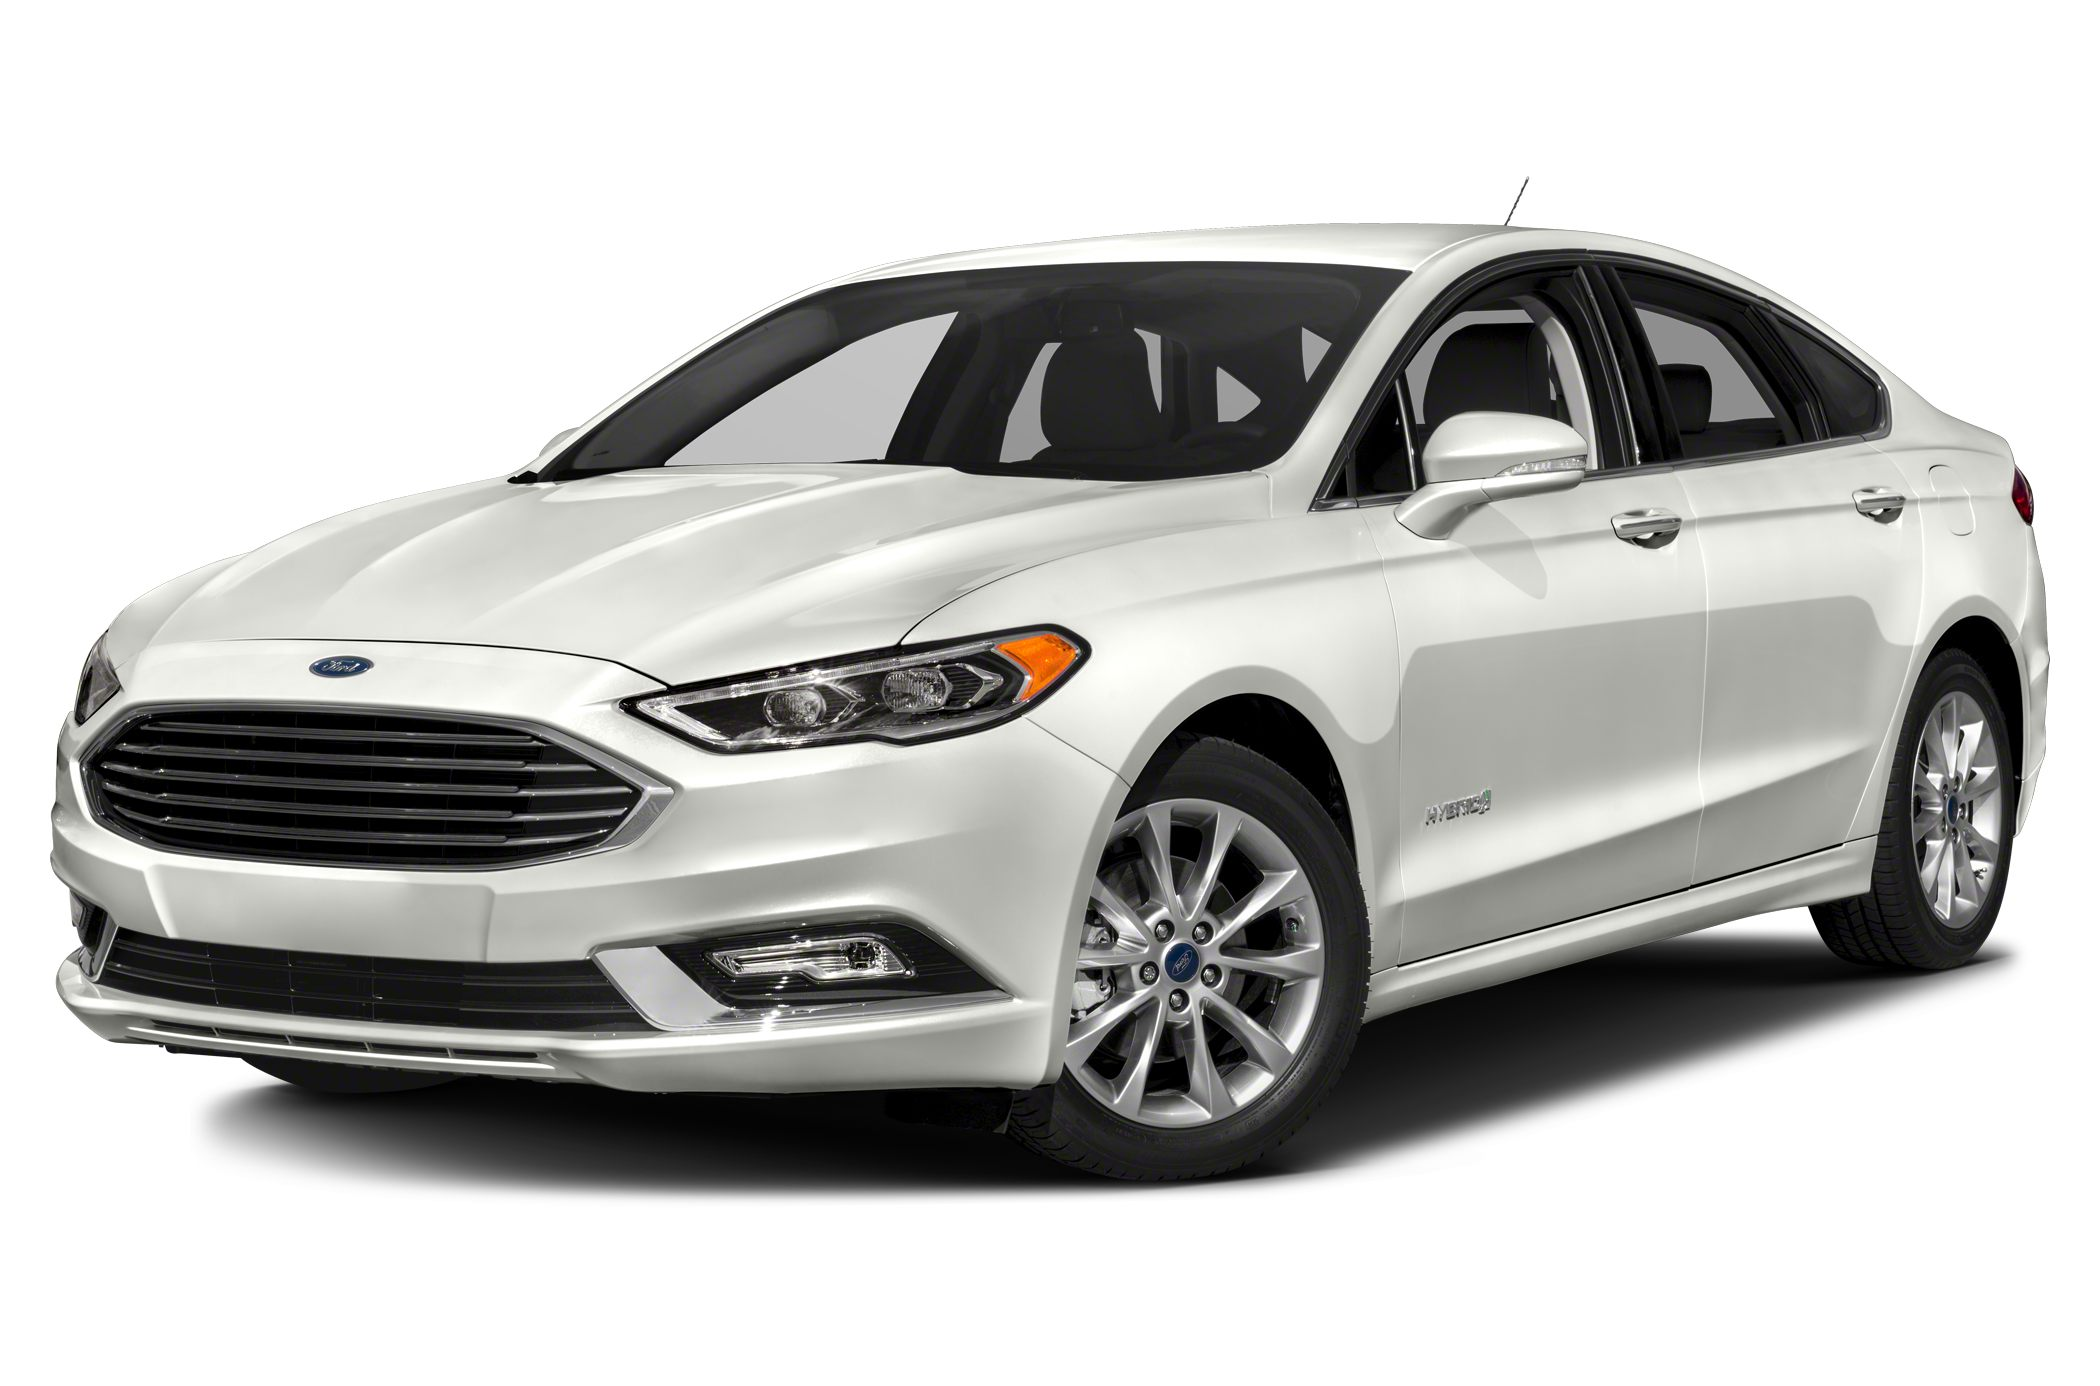 2018 Fusion Hybrid Owner Reviews